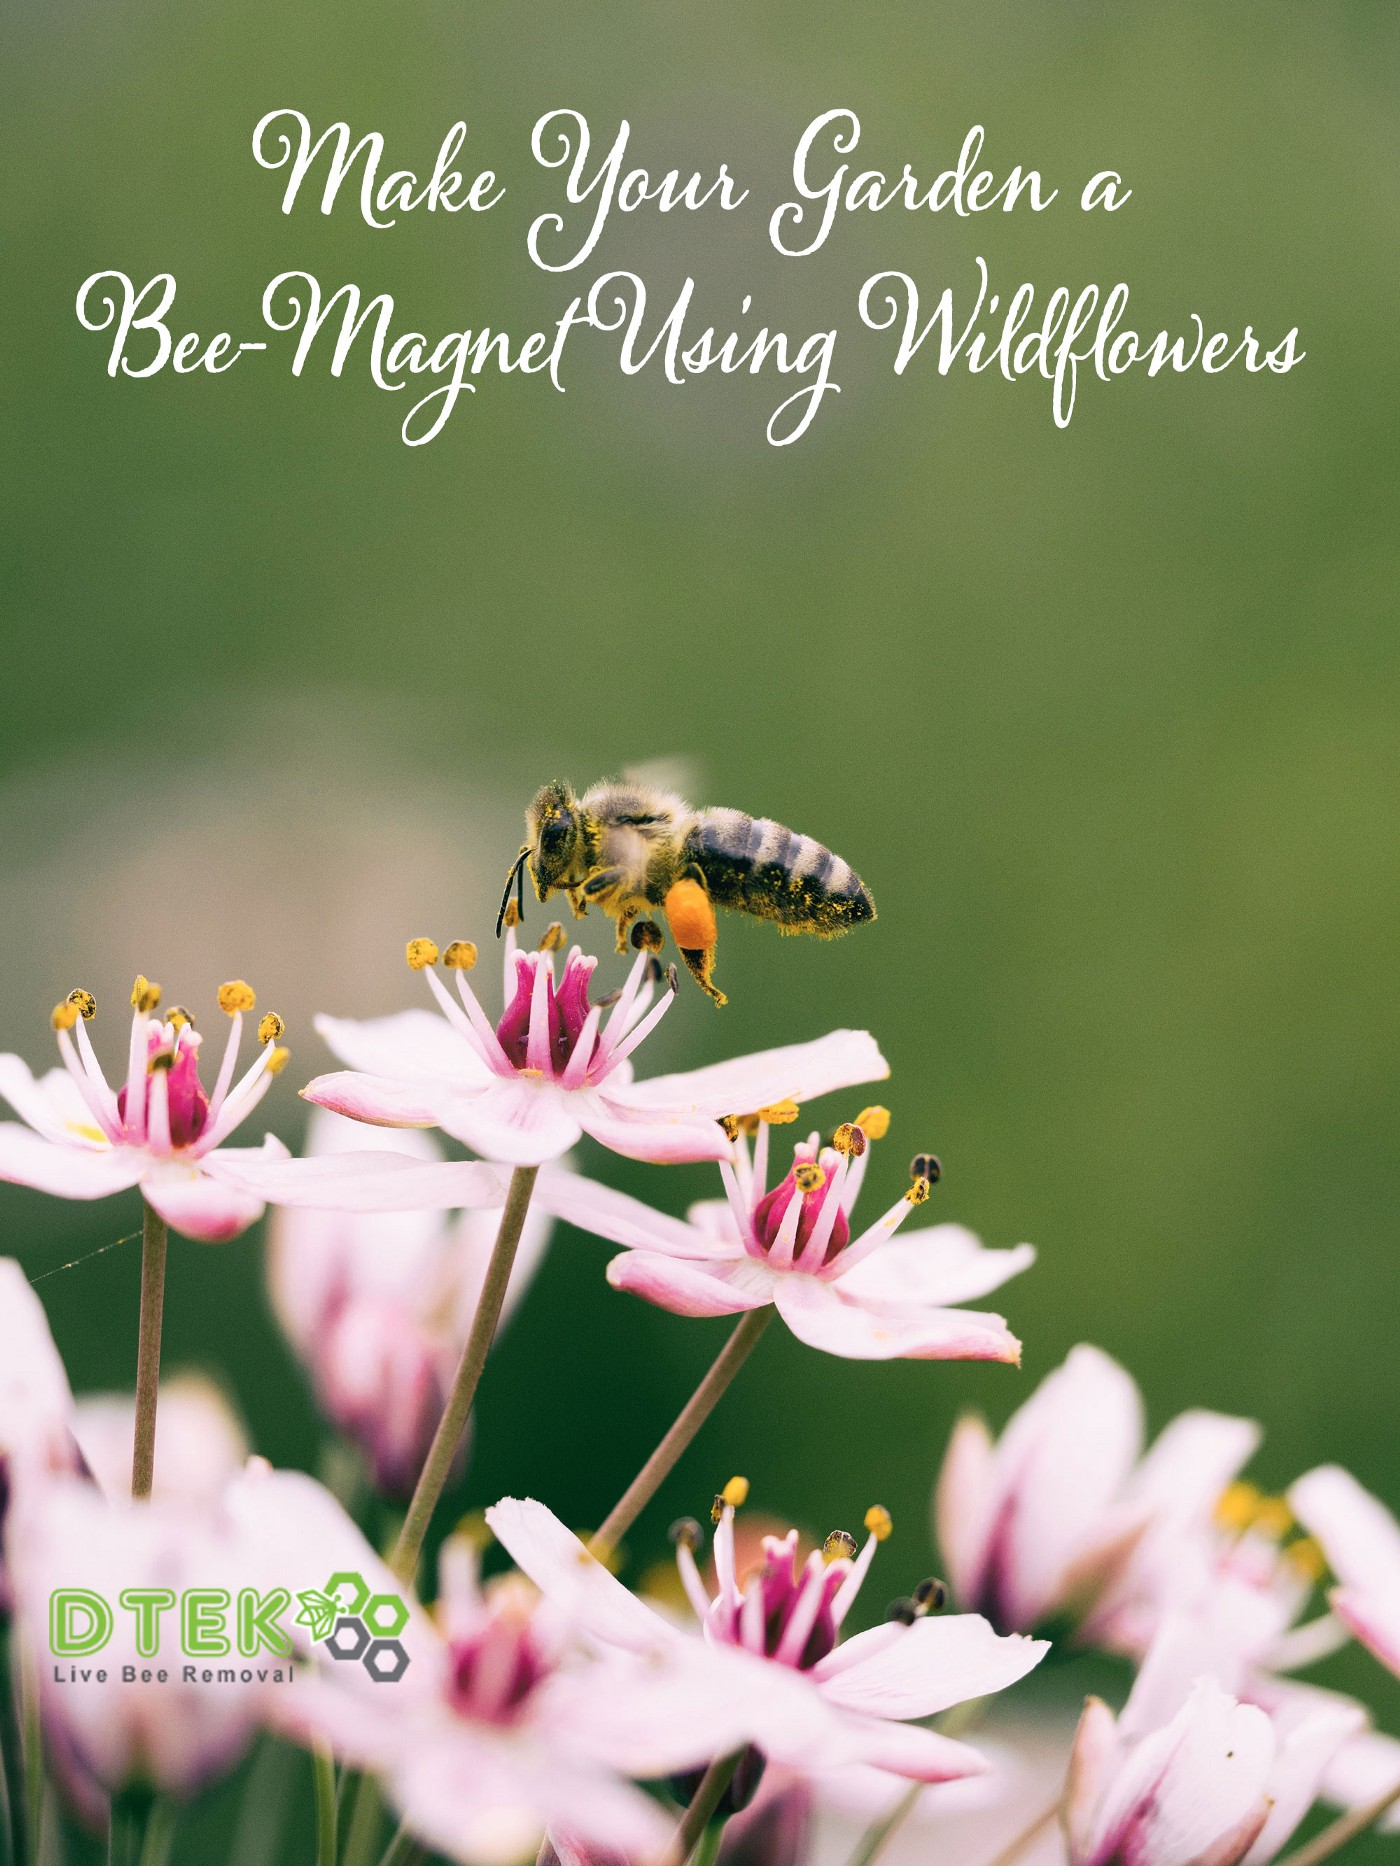 Make Your Garden a Bee-Magnet Using Wildflowers